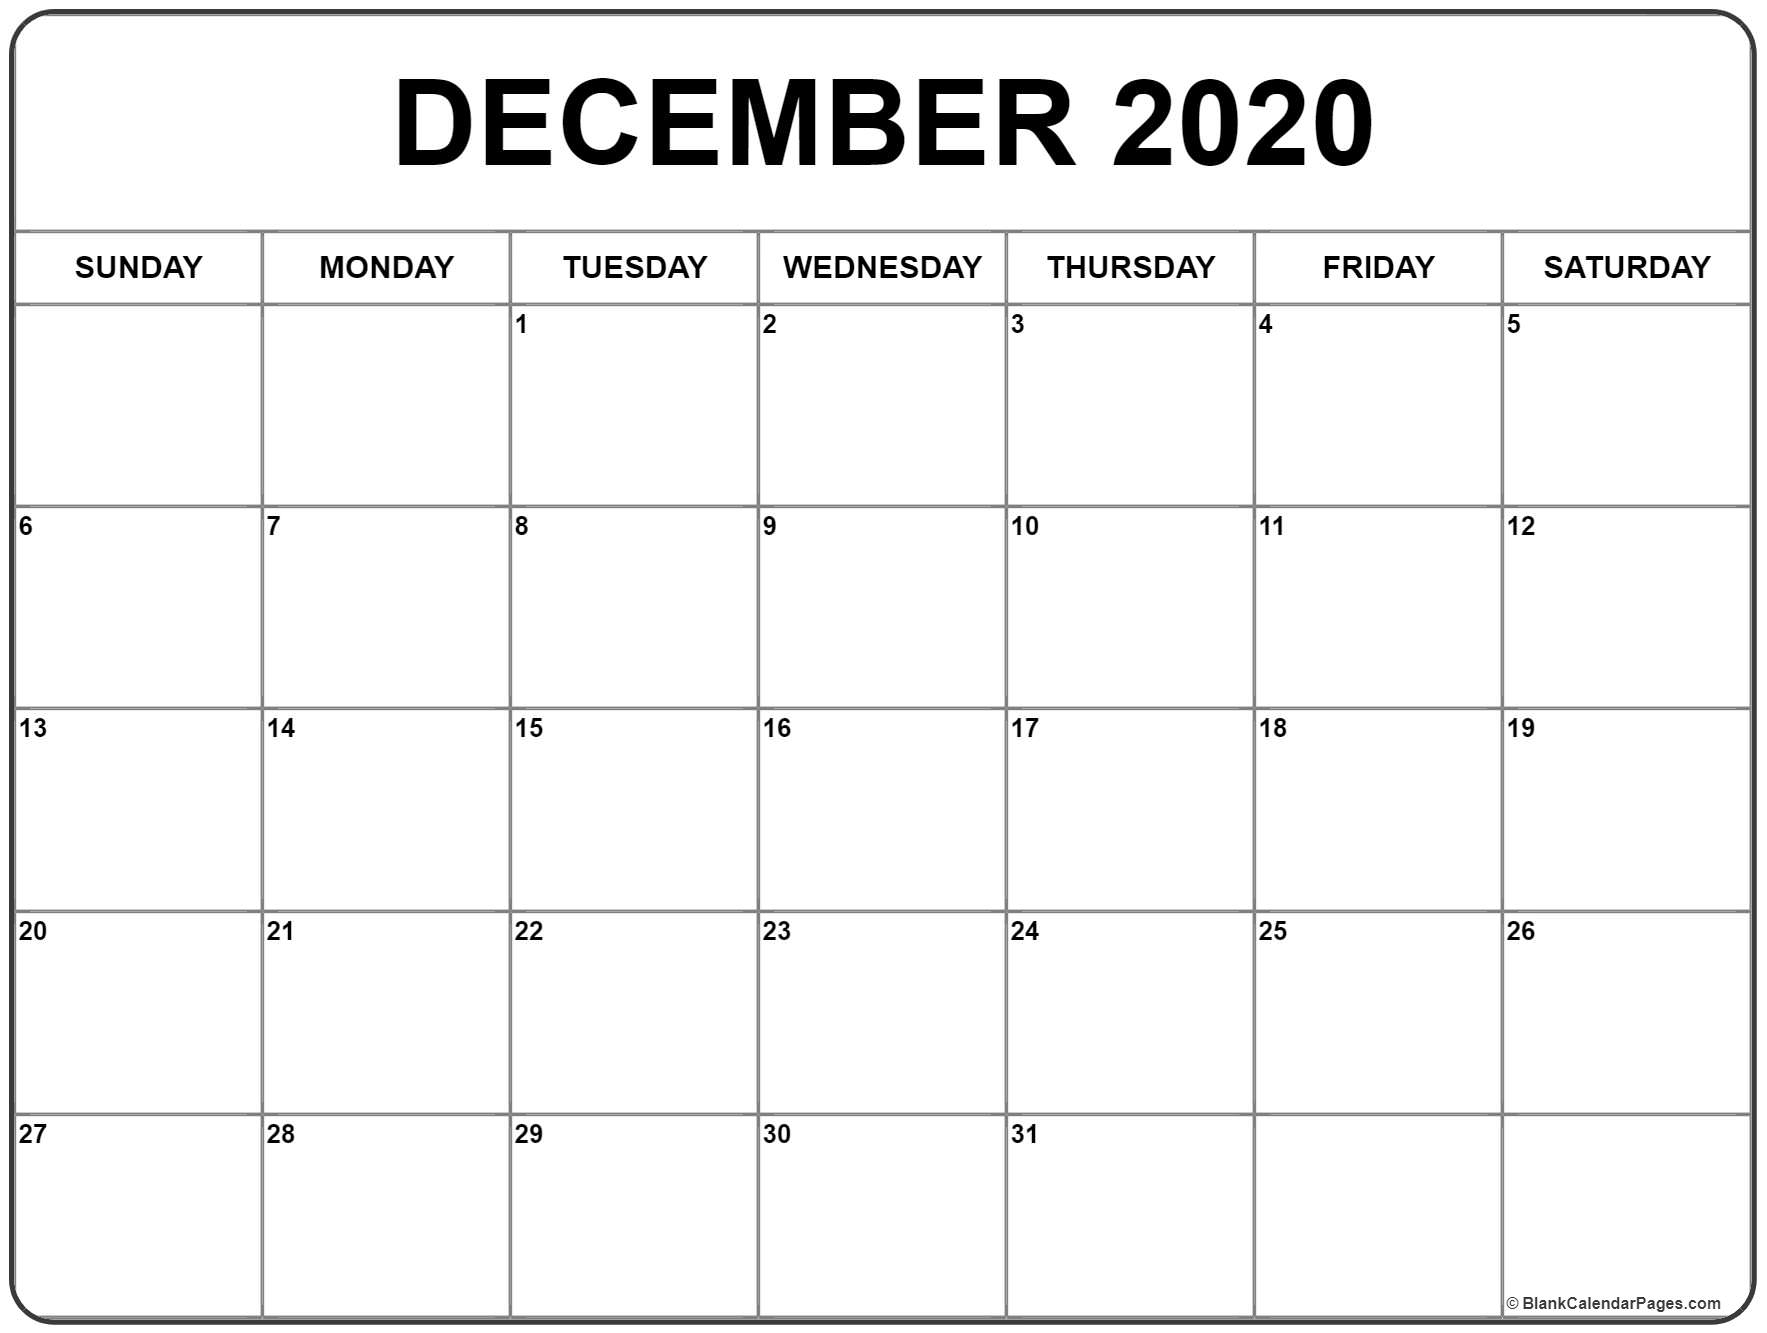 Downloadable Calendar December 2020 - Wpa.wpart.co